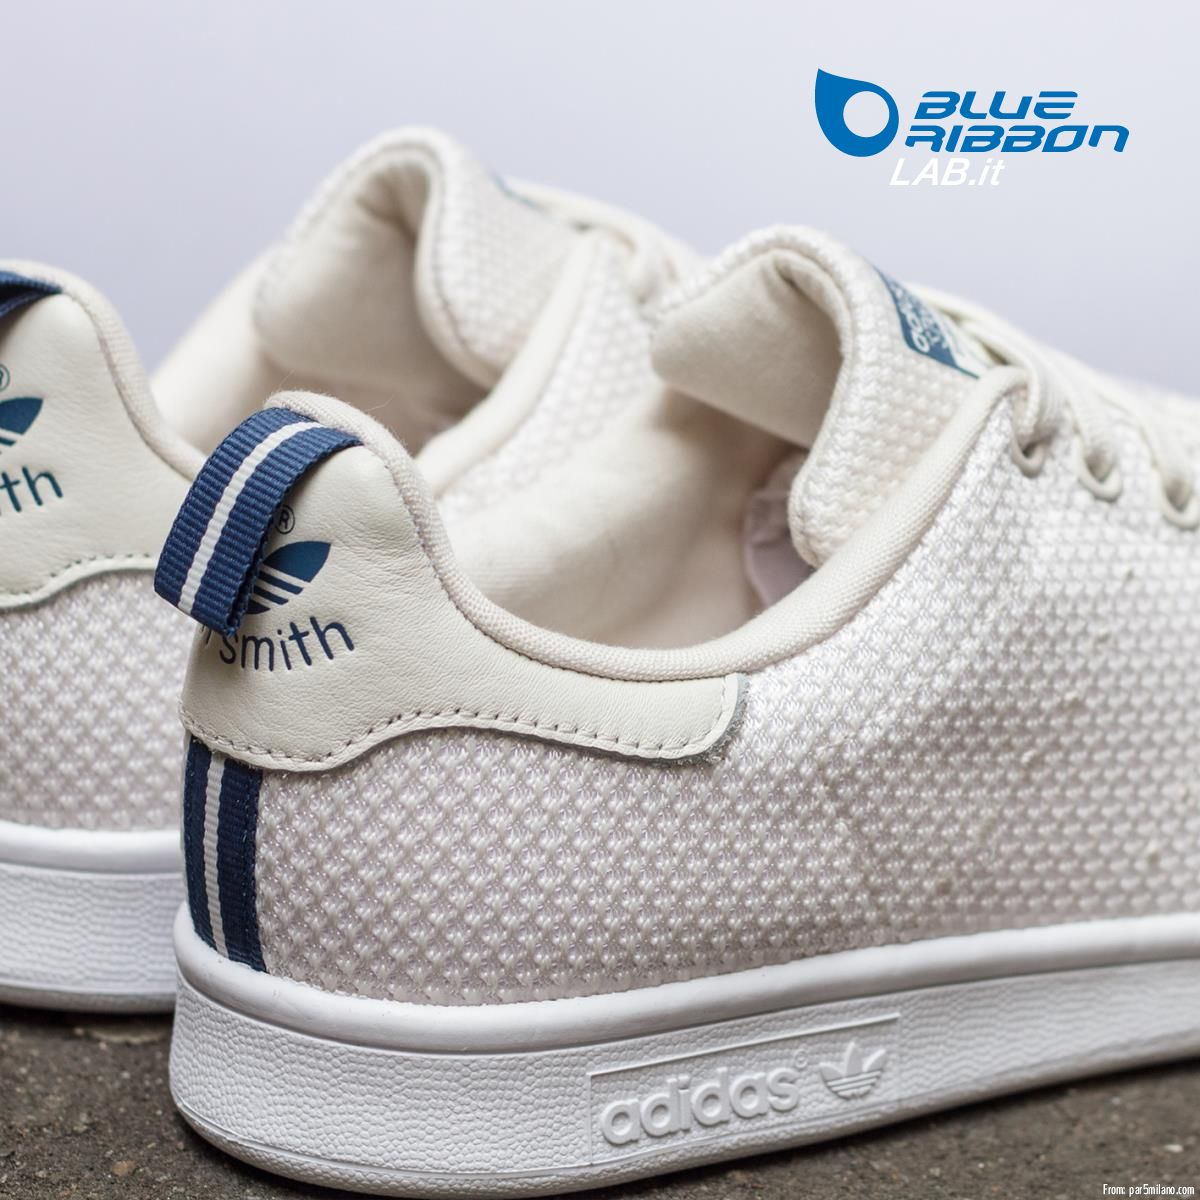 best supplier where can i buy 2018 sneakers Adidas Stan Smith CK | Adidas Stan Smith en 2019 | Chaussure ...